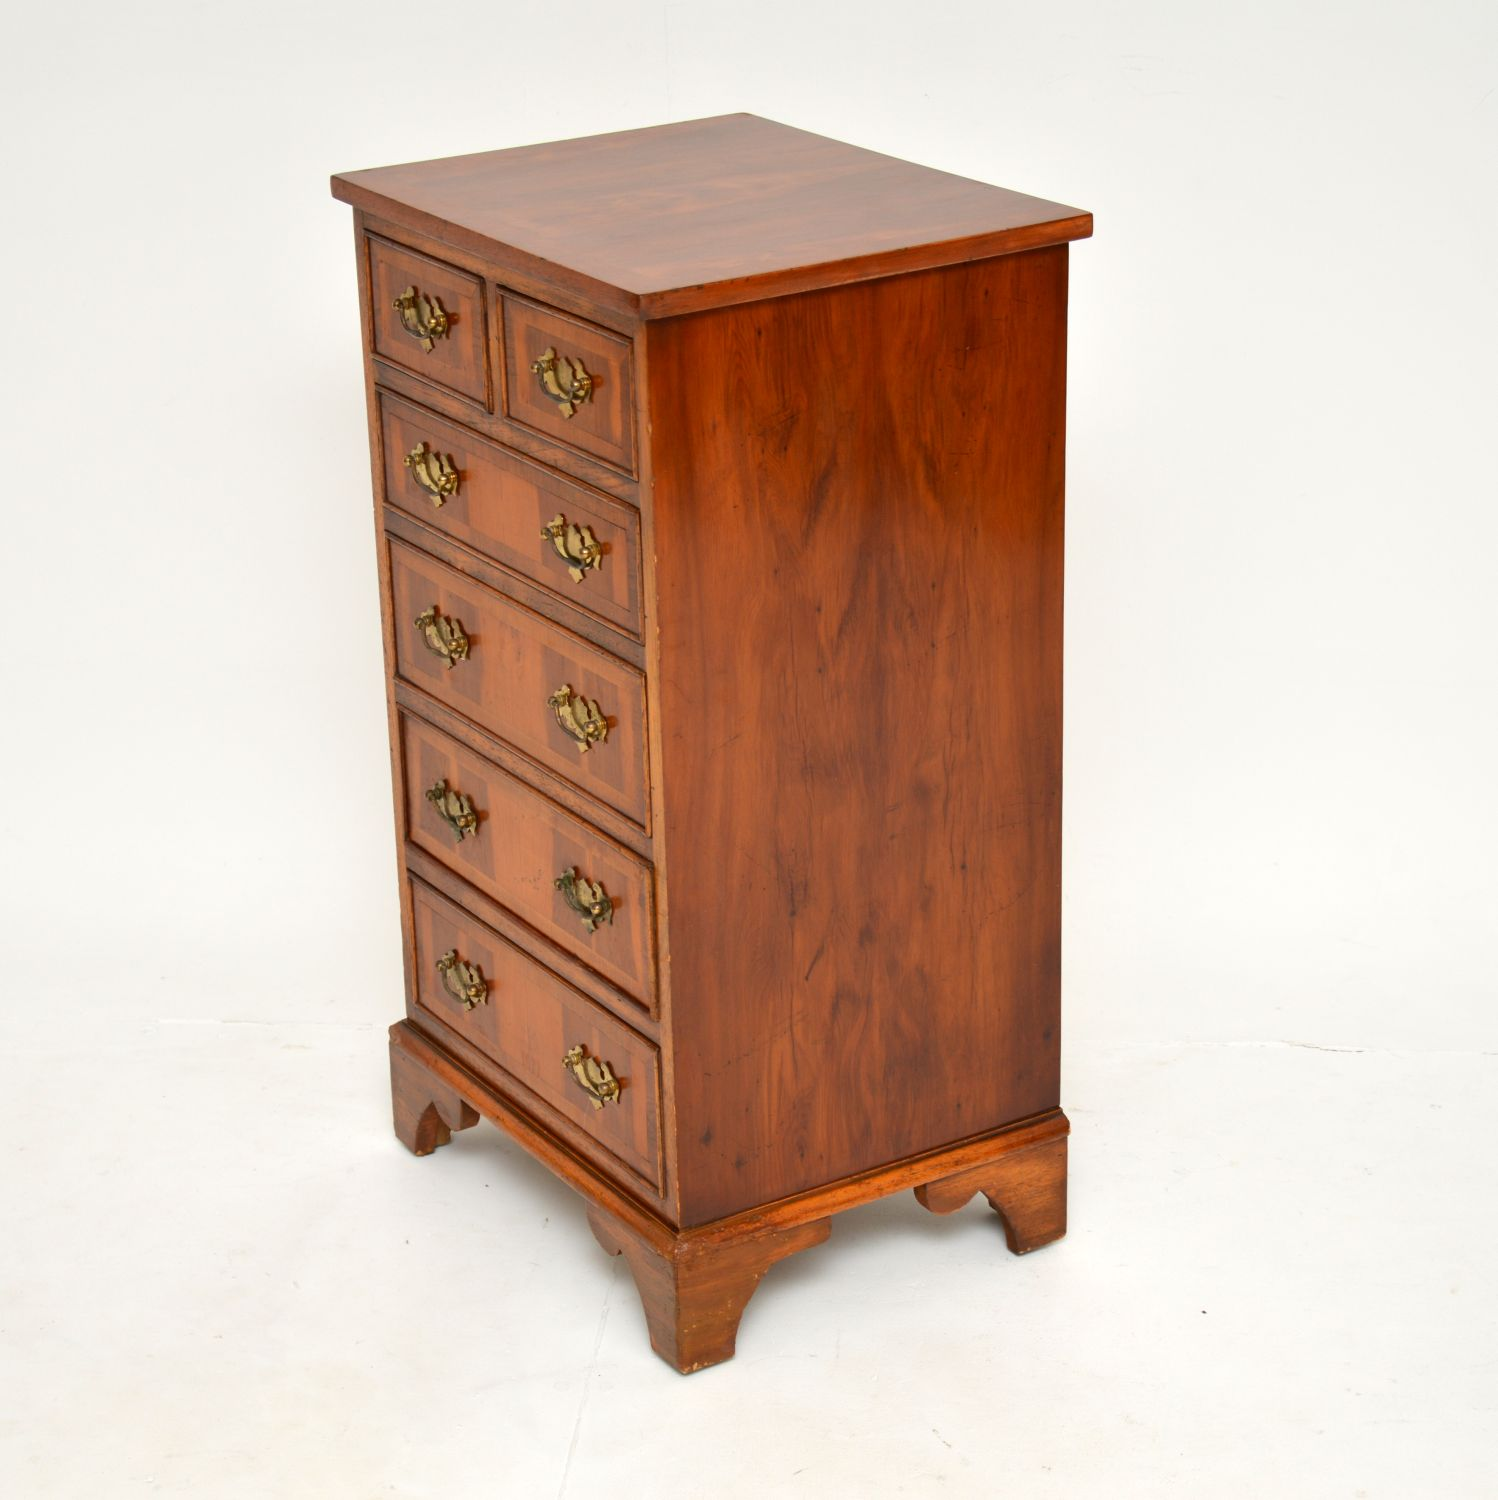 antique georgian yew wood chest of drawers